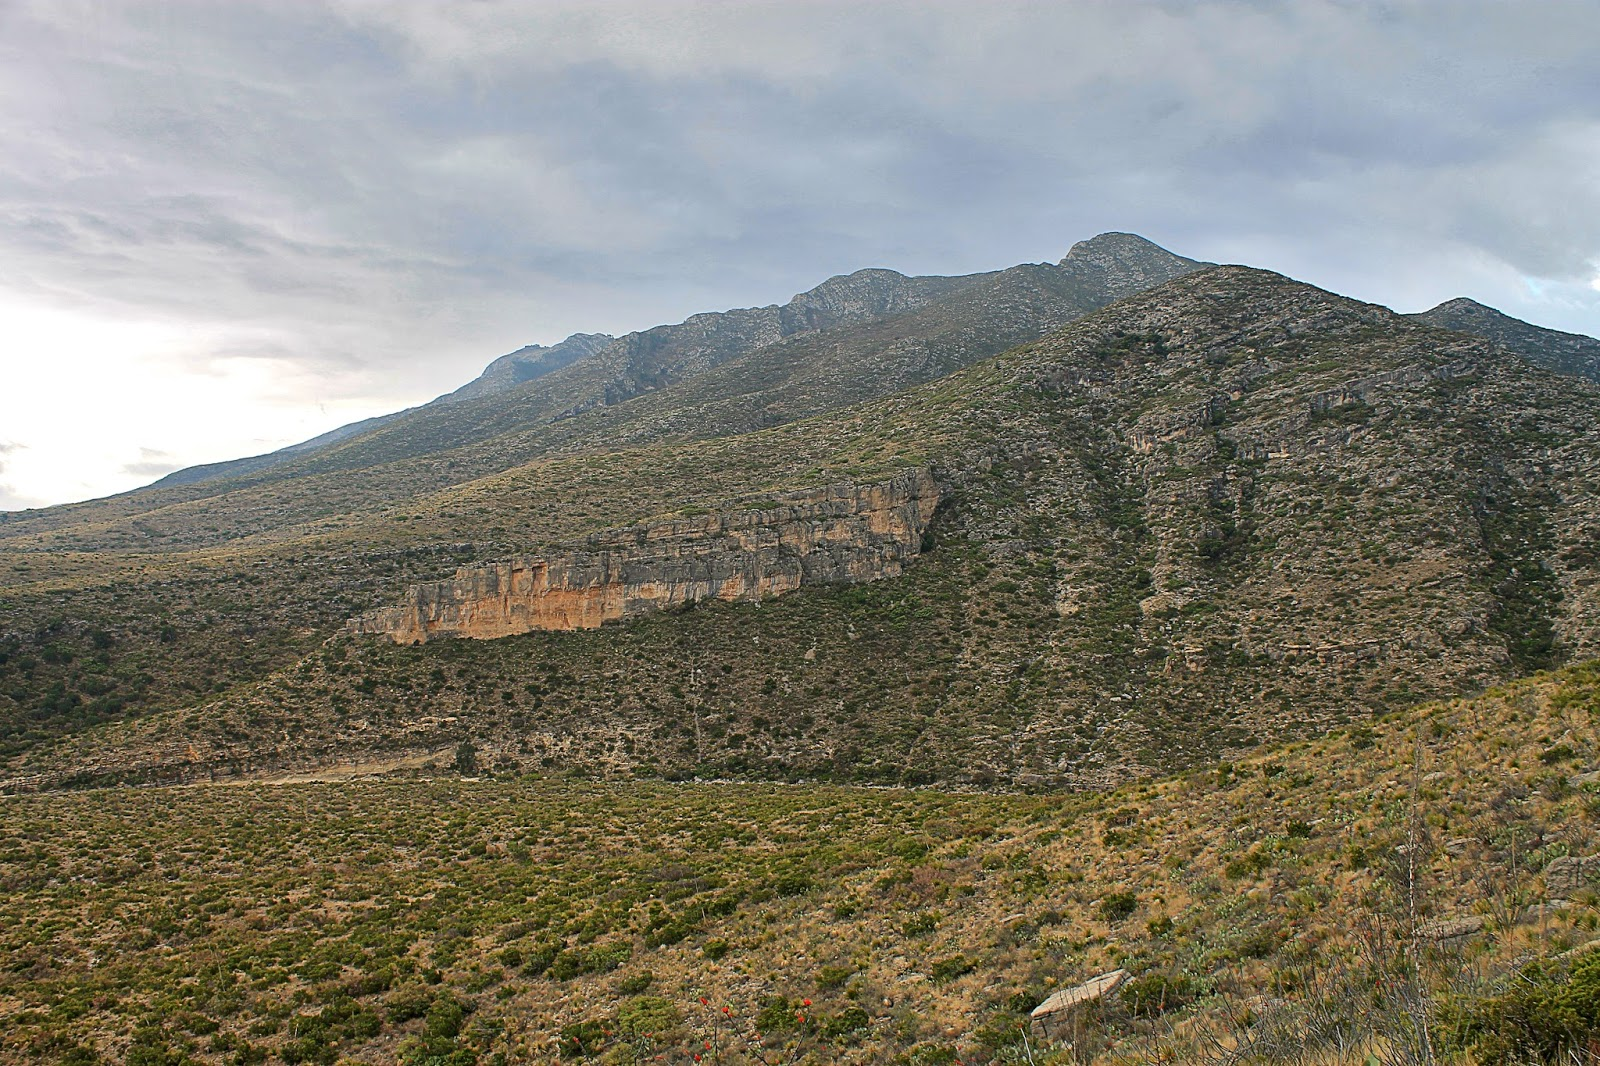 Guadalupe Mountains National Park Texas New Mexico McKittrick Canyon Queen Plateau Permian reef trail hiking fossils desert canyon copyright RocDocTravel.com